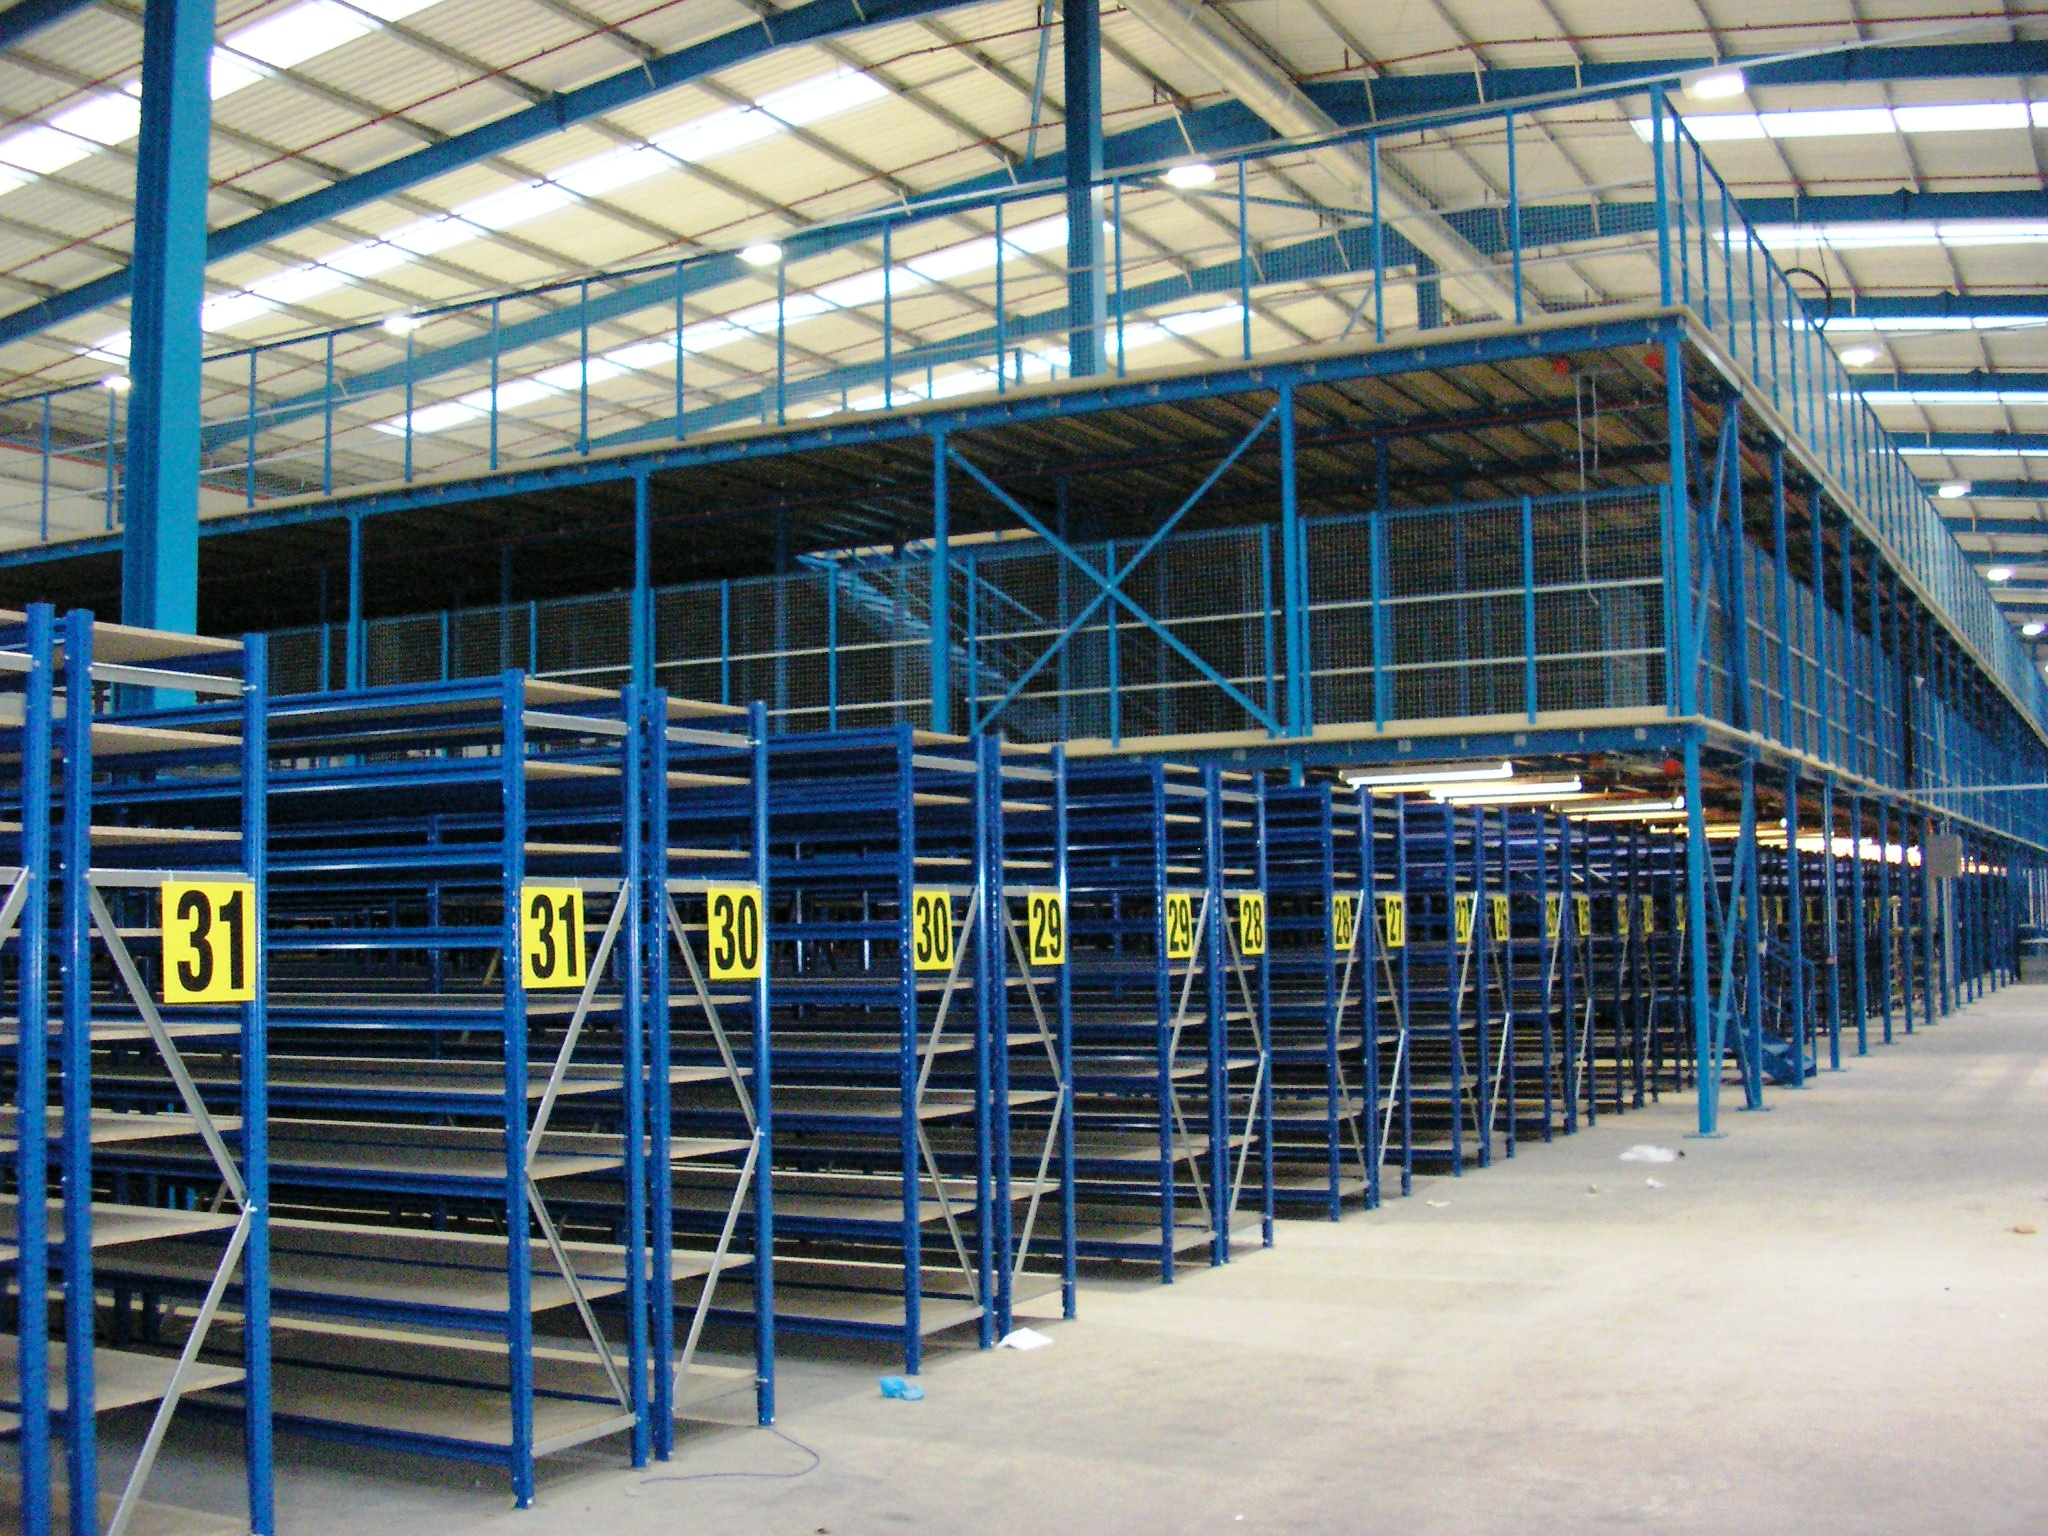 Mezzanine Storage Space